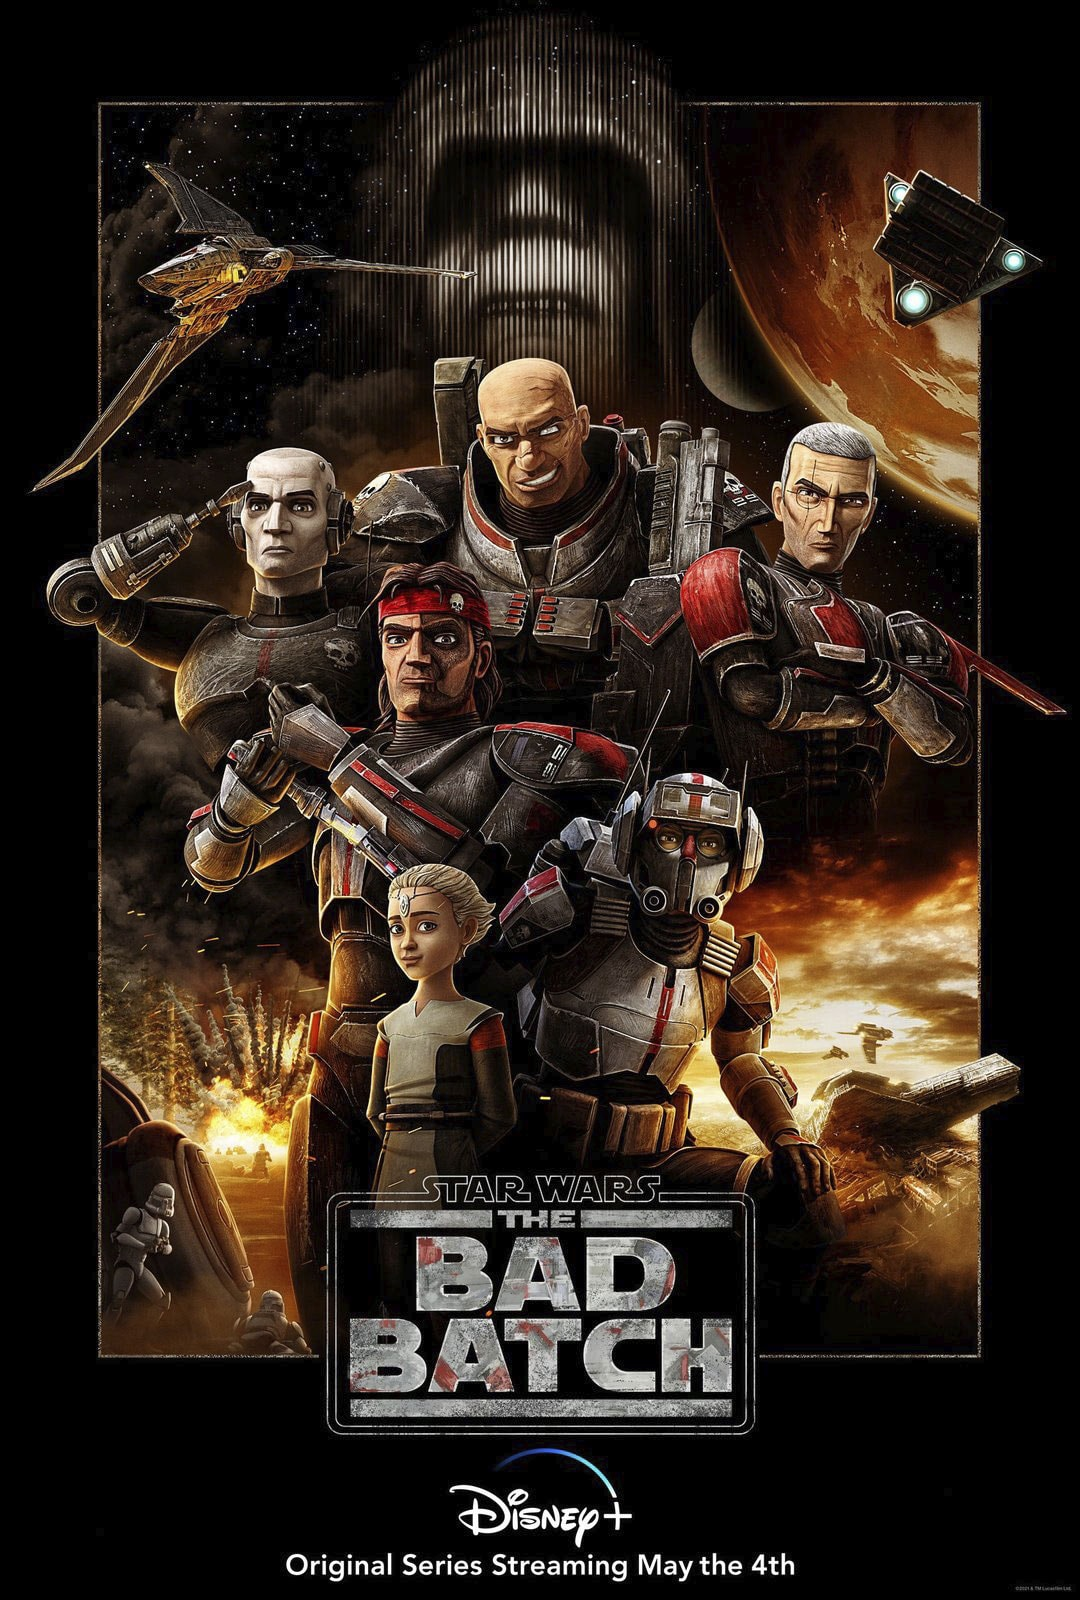 the bad batch premiere poster